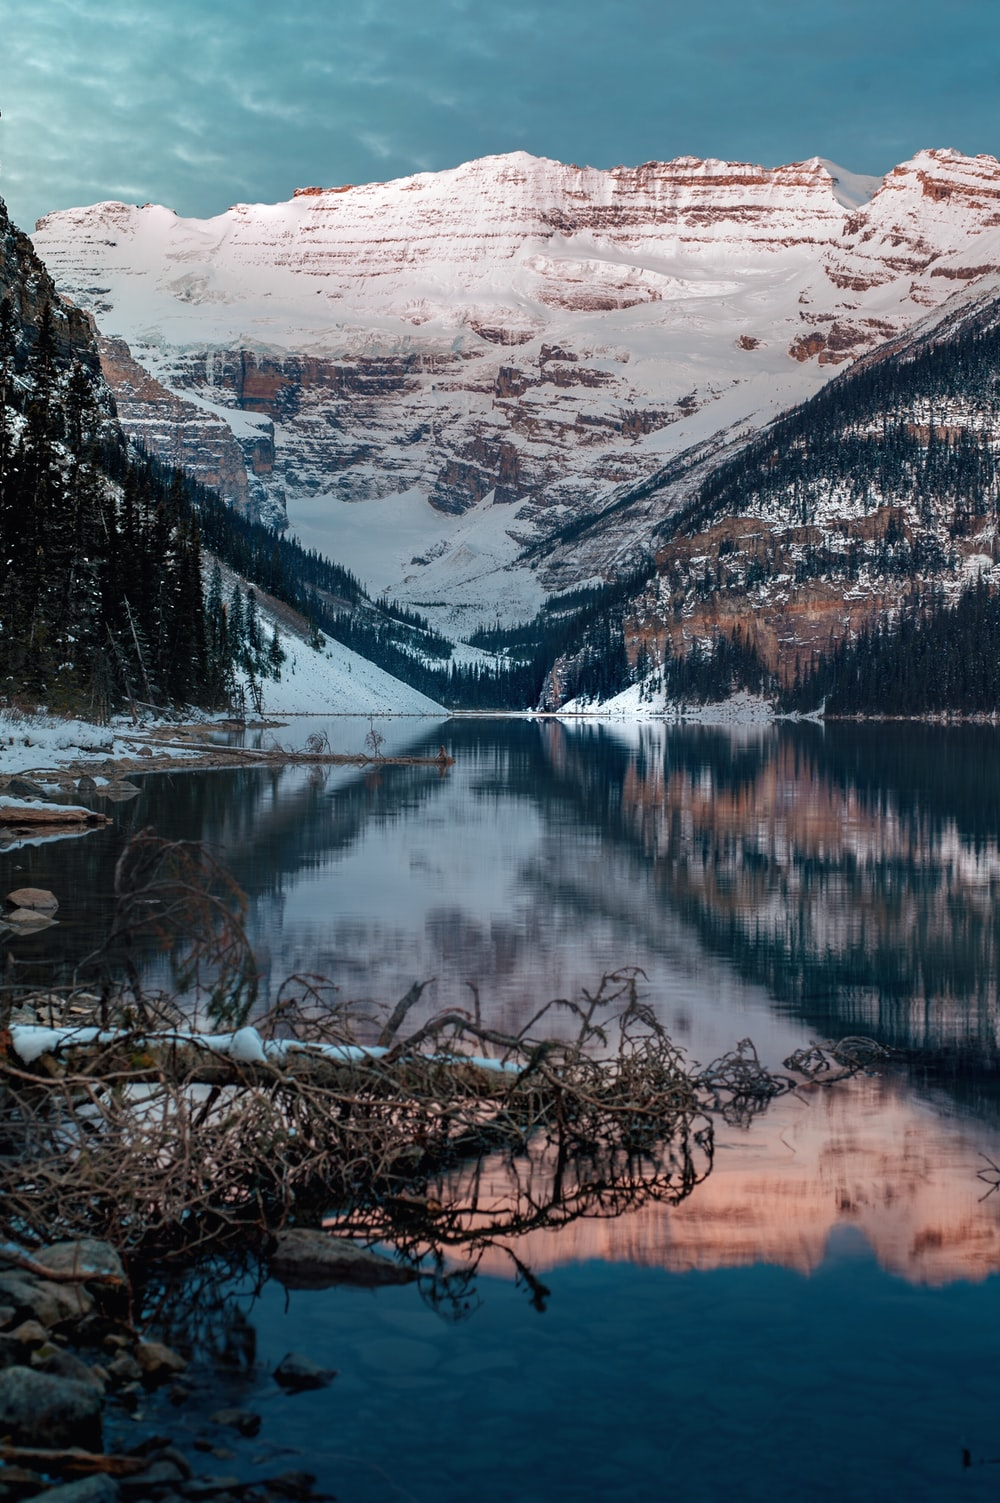 panoramic photography of snow-covered mountain near lake during daytime